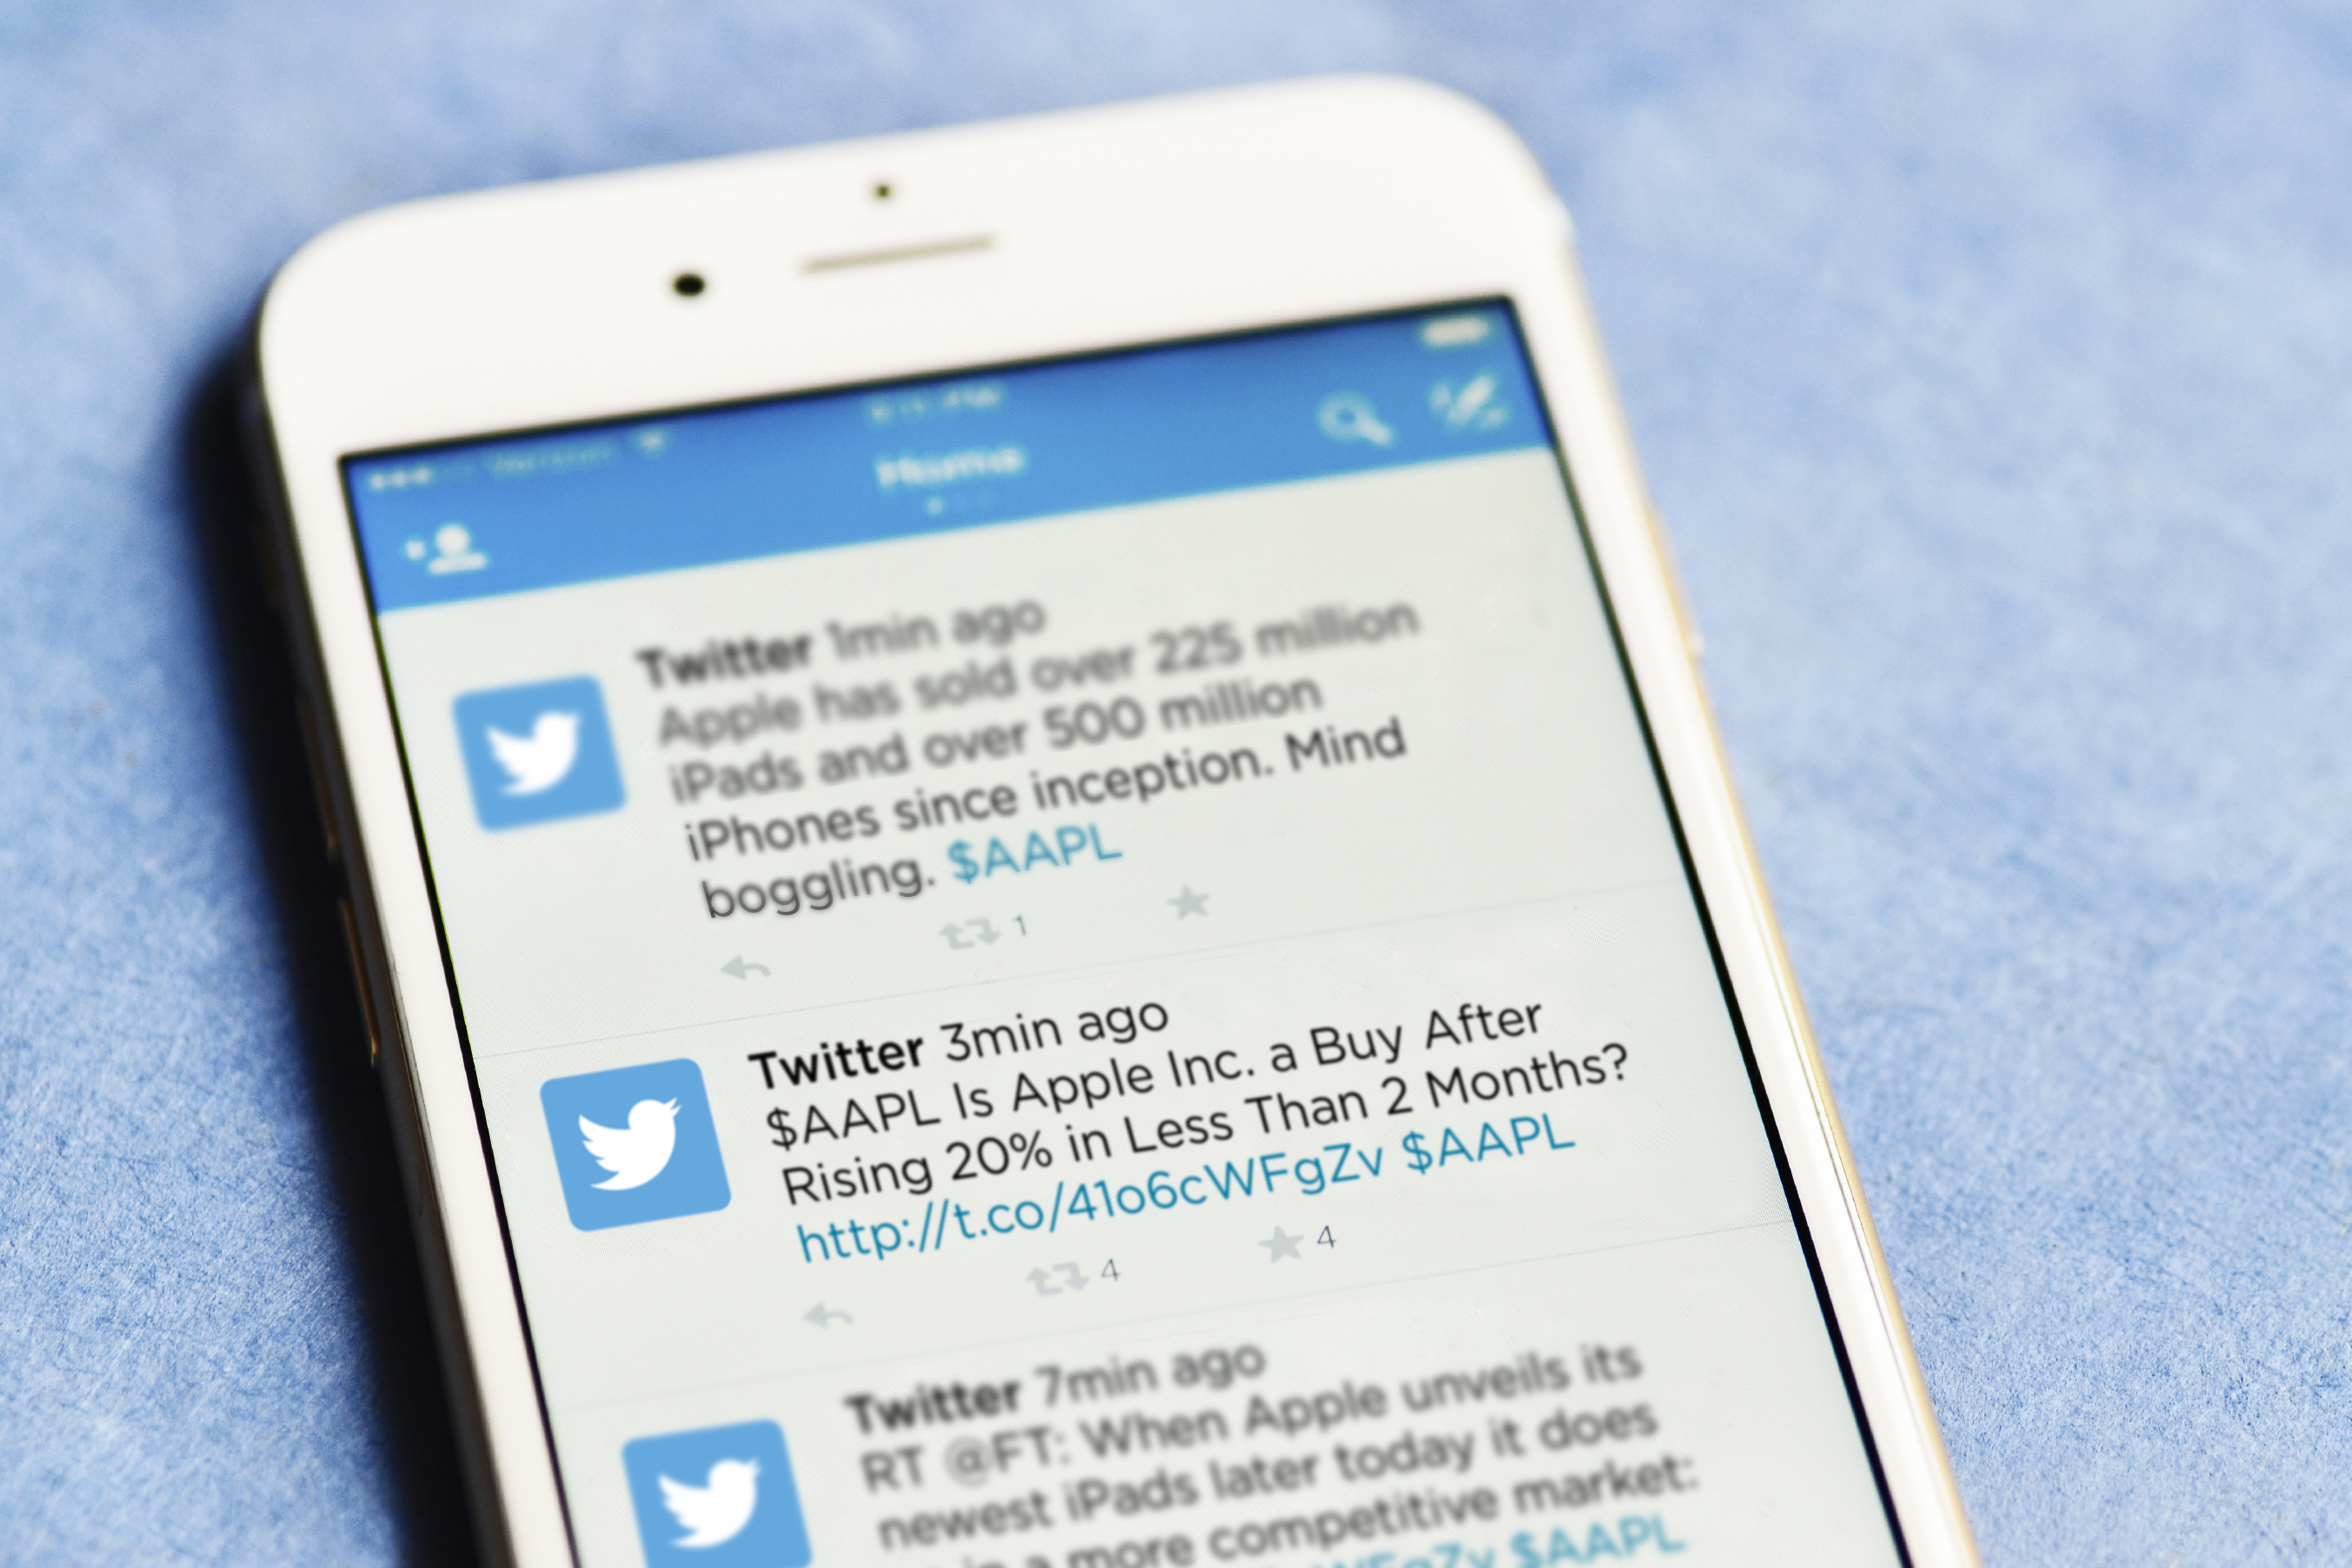 Business-related tweets on a smartphone. (Sean Flynn/UConn Photo)